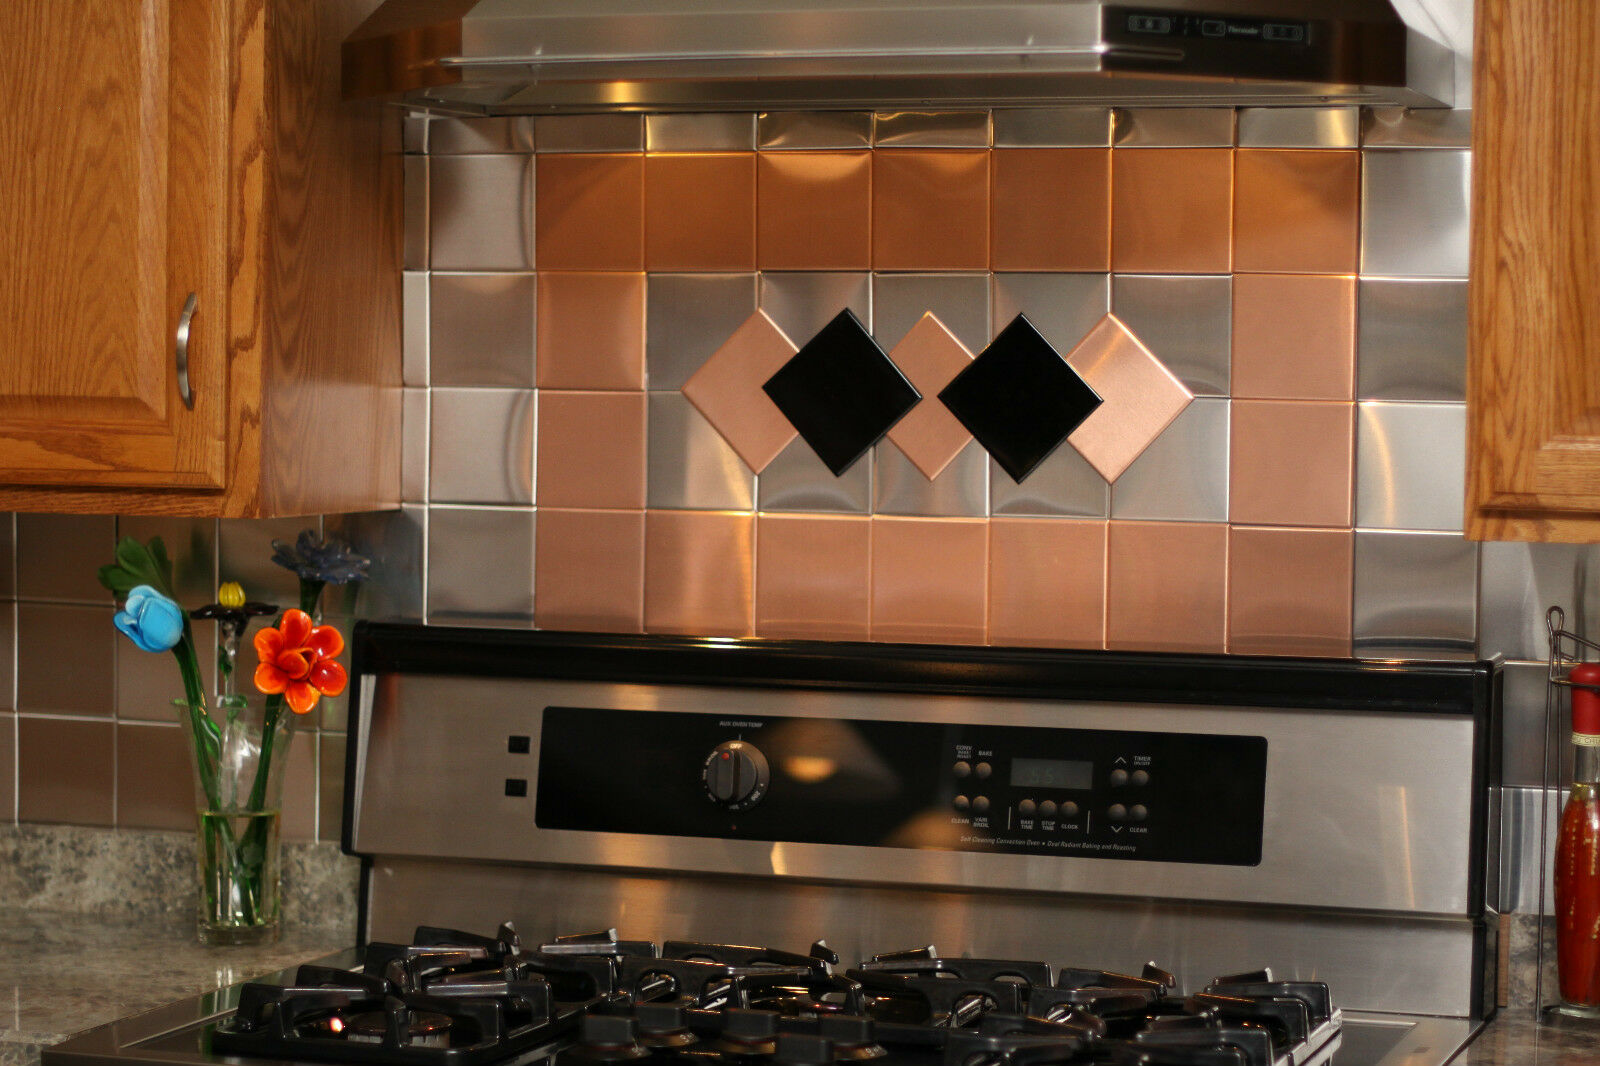 24 decorative self adhesive kitchen metal wall tiles 3 sq ft